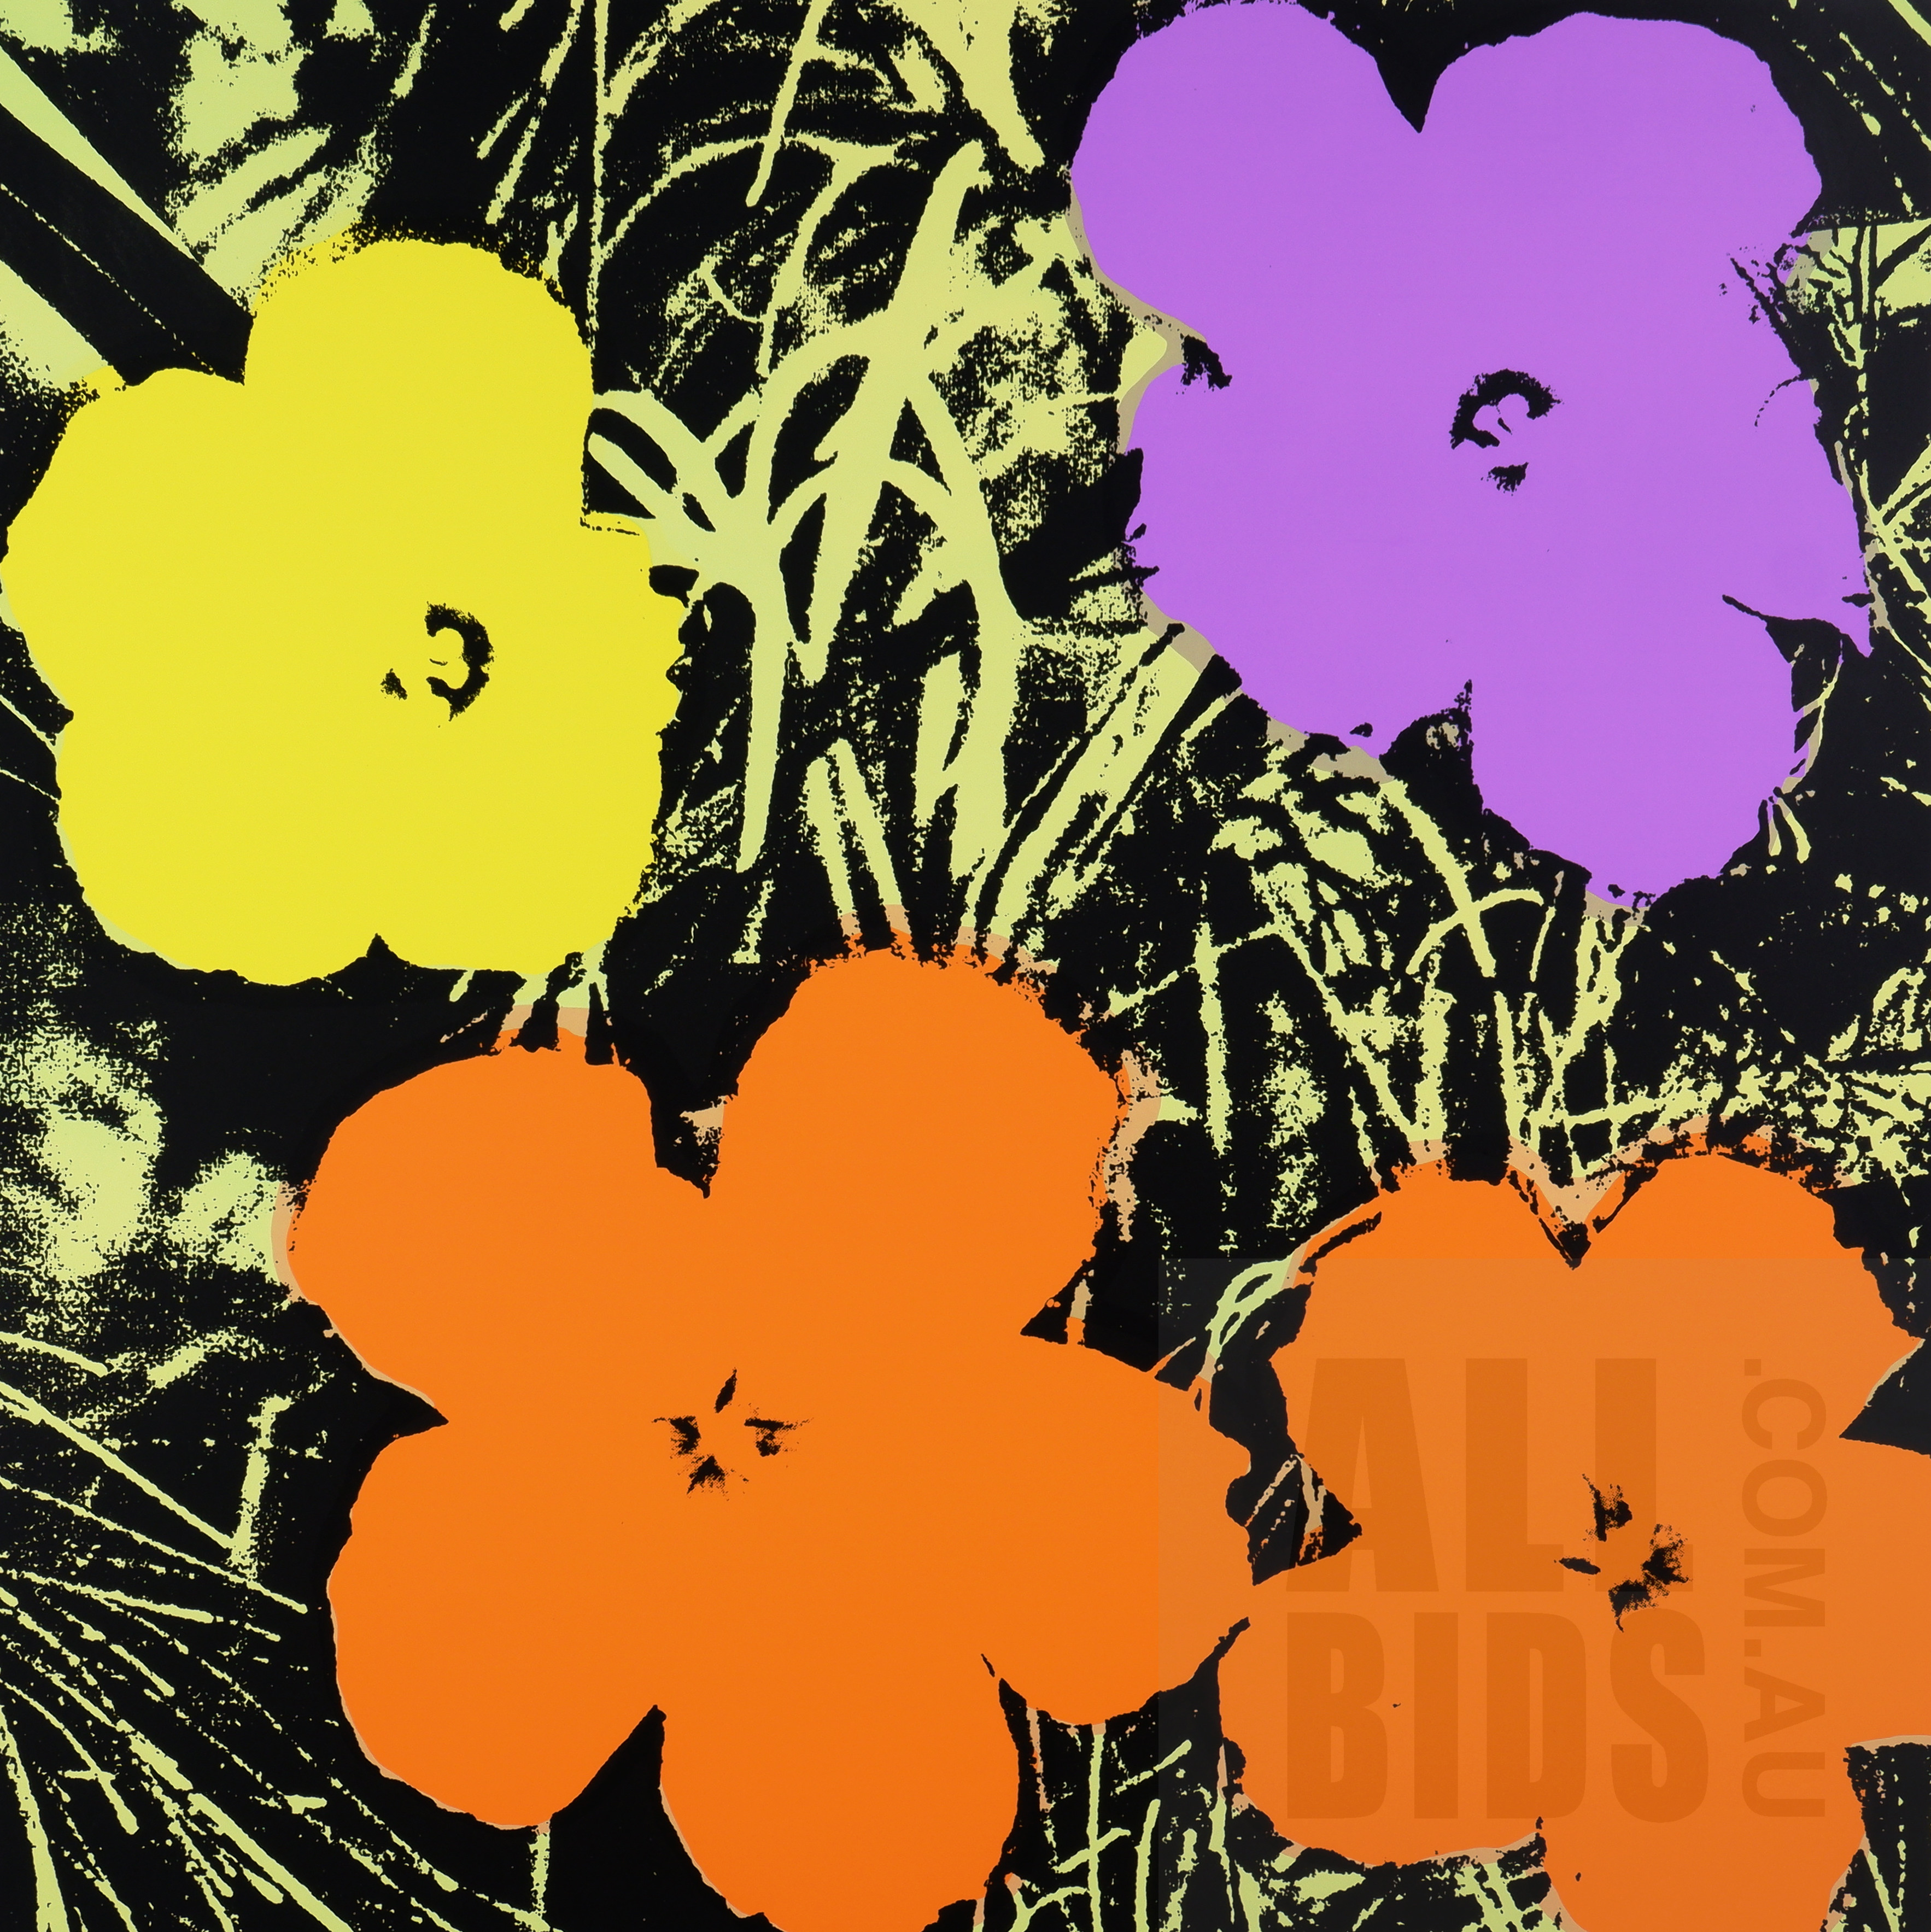 'After Andy Warhol, Flowers 11.67 (2018), Screenprint on Museum Board, Published by Sunday B. Morning, 90 x 90 cm'